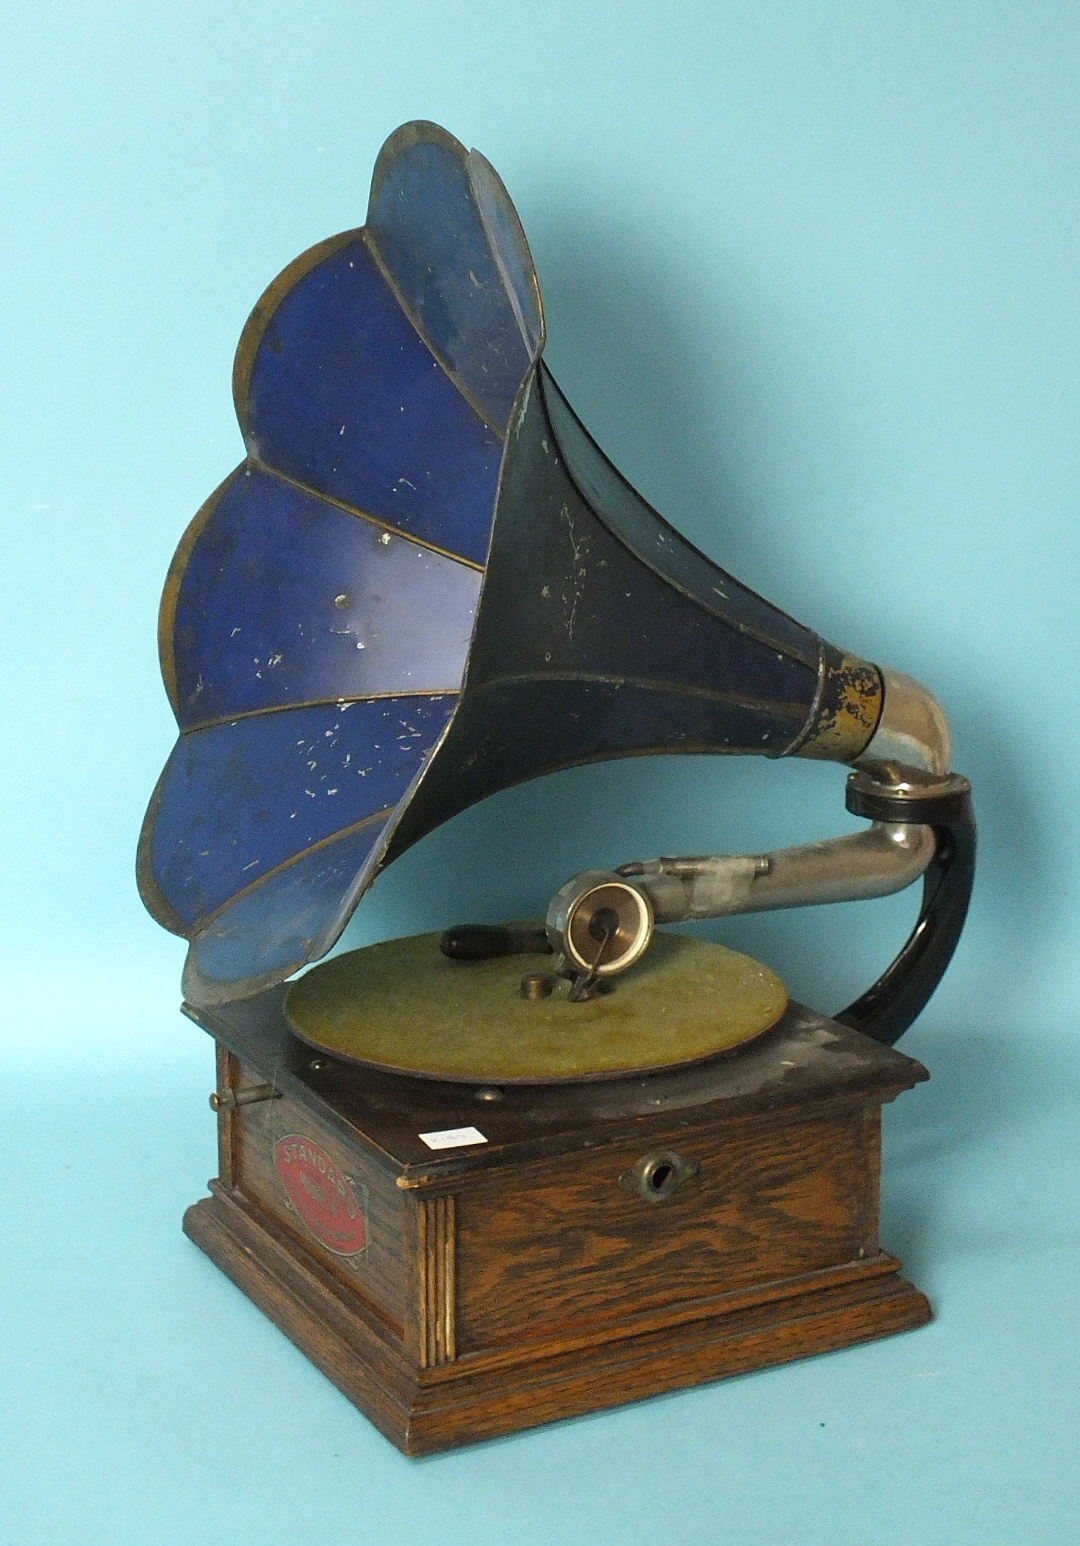 Lot 28 - An early-20th century Standard Talking Machine Co. Standard Model A horn table-top gramophone, the